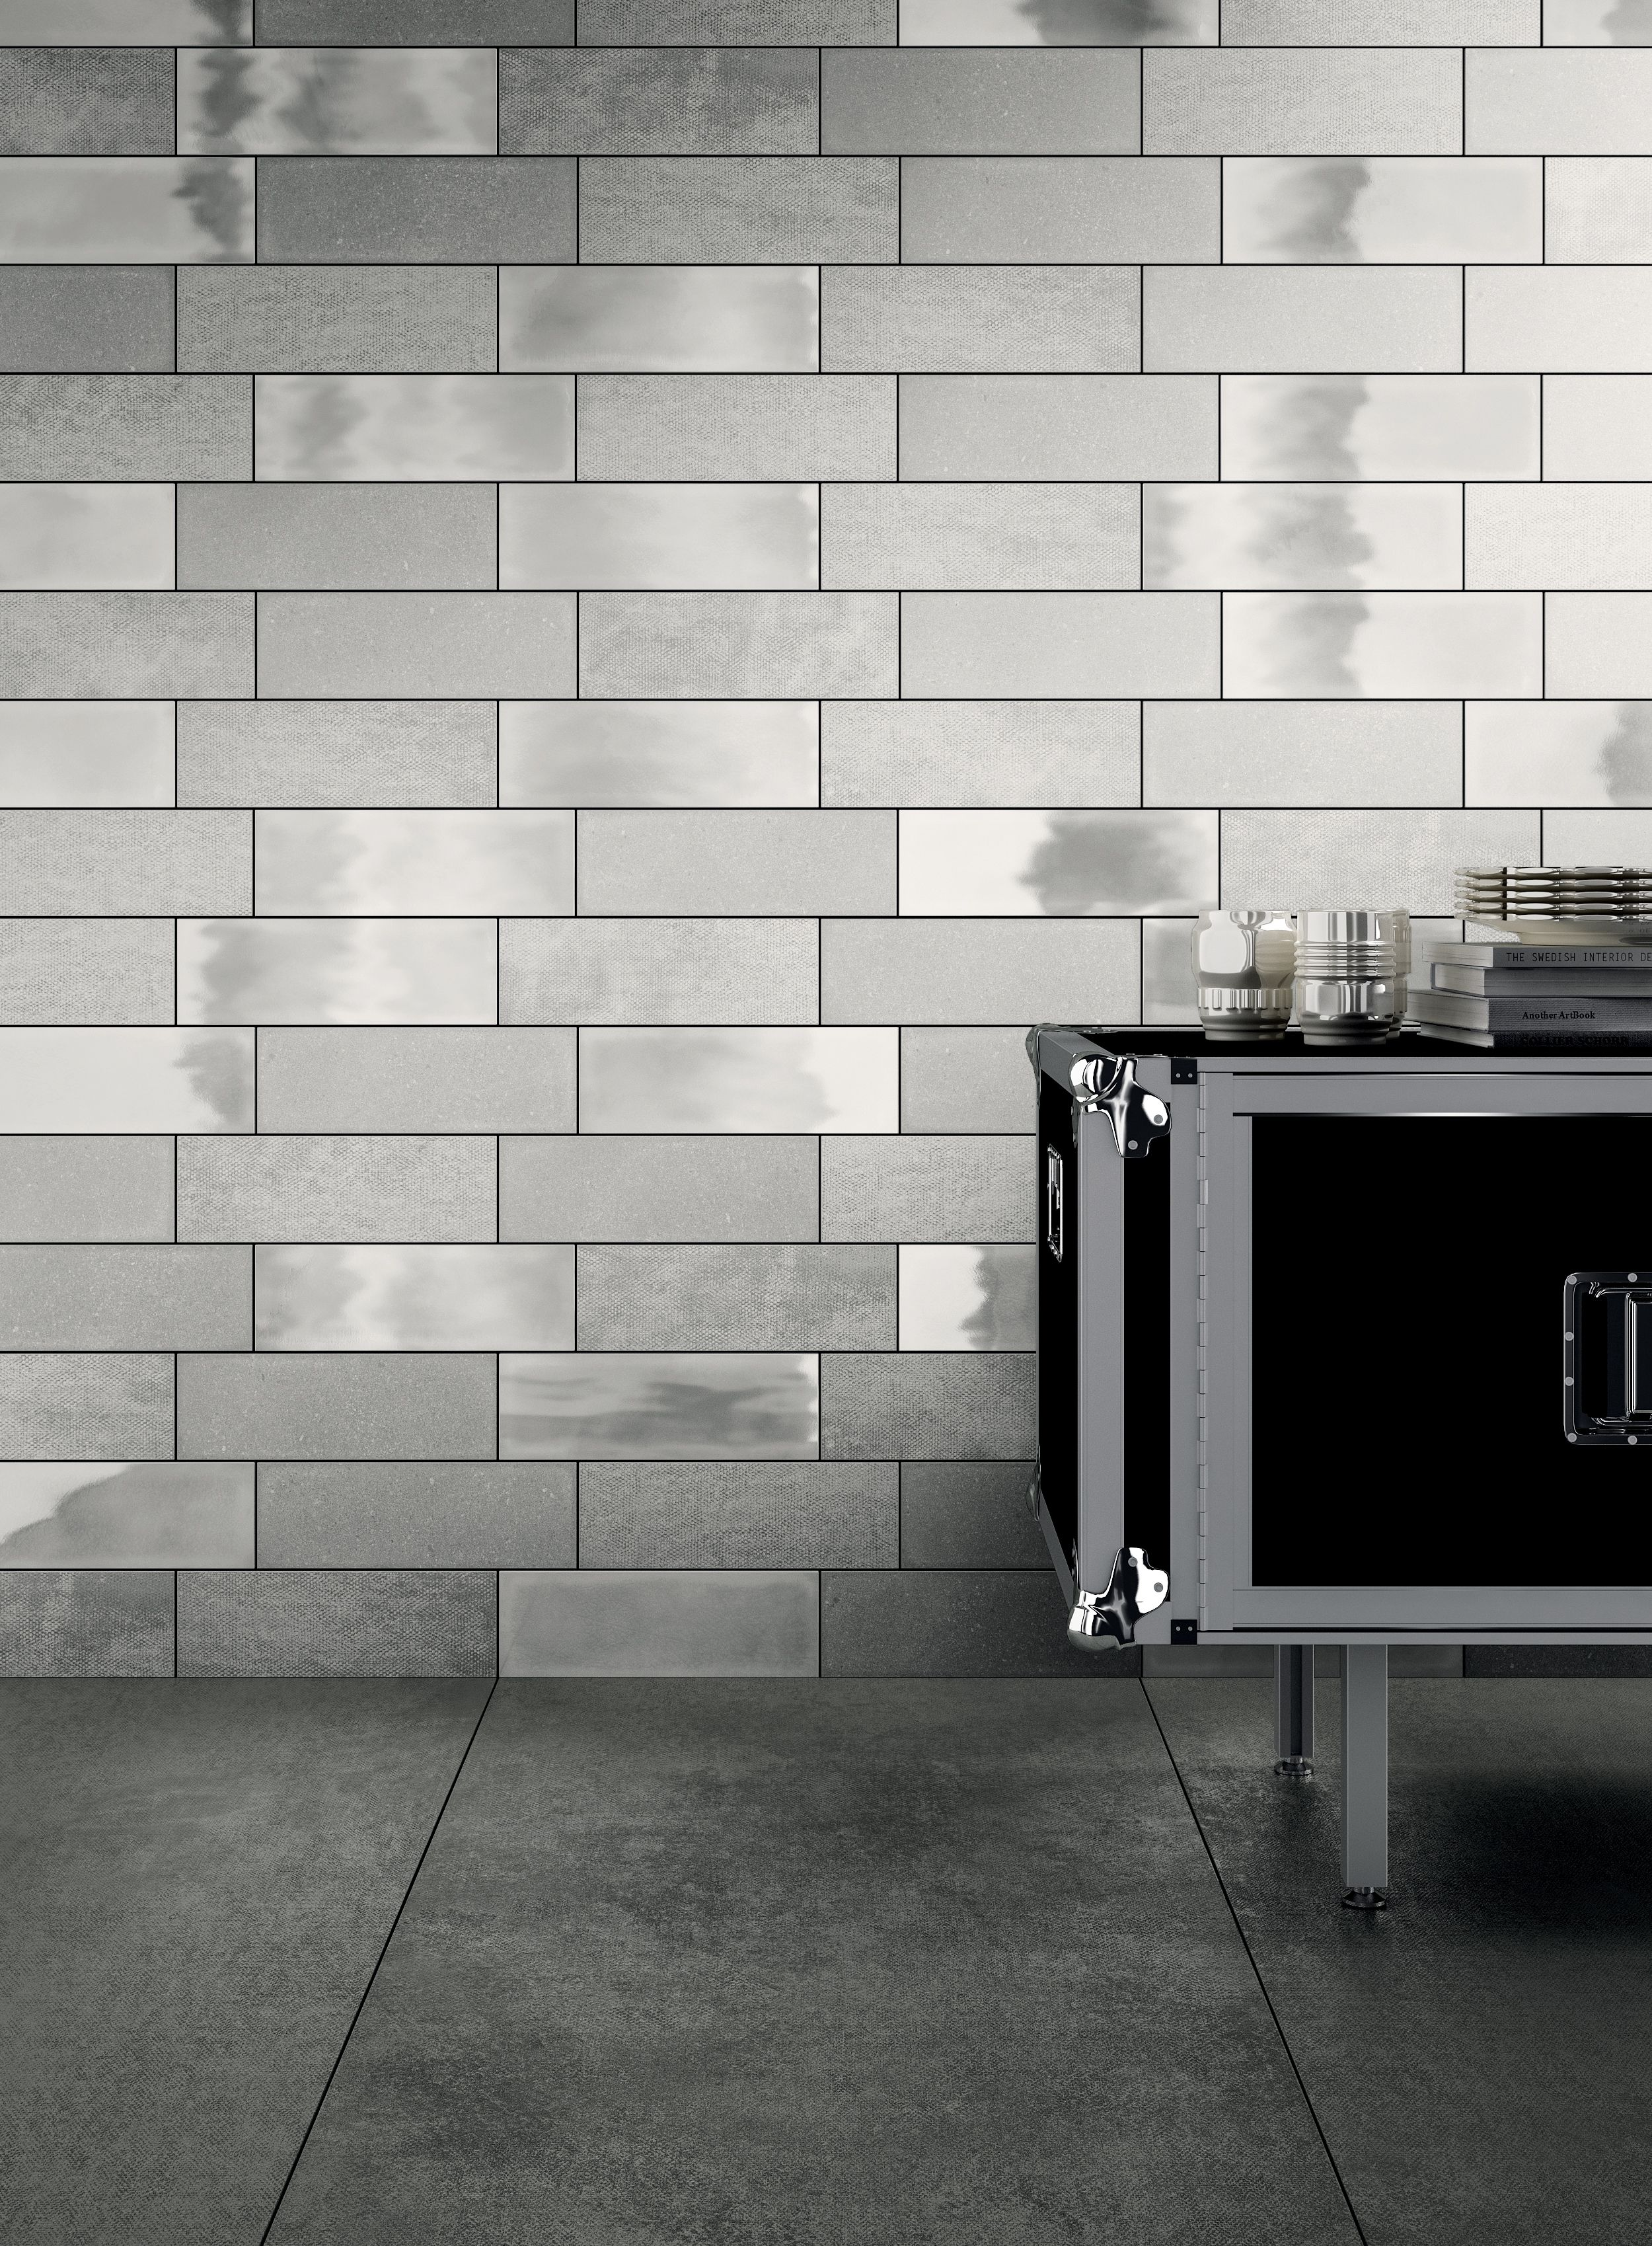 Wall iris ceramica diesel camp army canvasglazerock white 4 designed as part of the diesel living collection camp ceramic wall tile explores various finishes transposed from textiles for an industrial design with a dailygadgetfo Choice Image